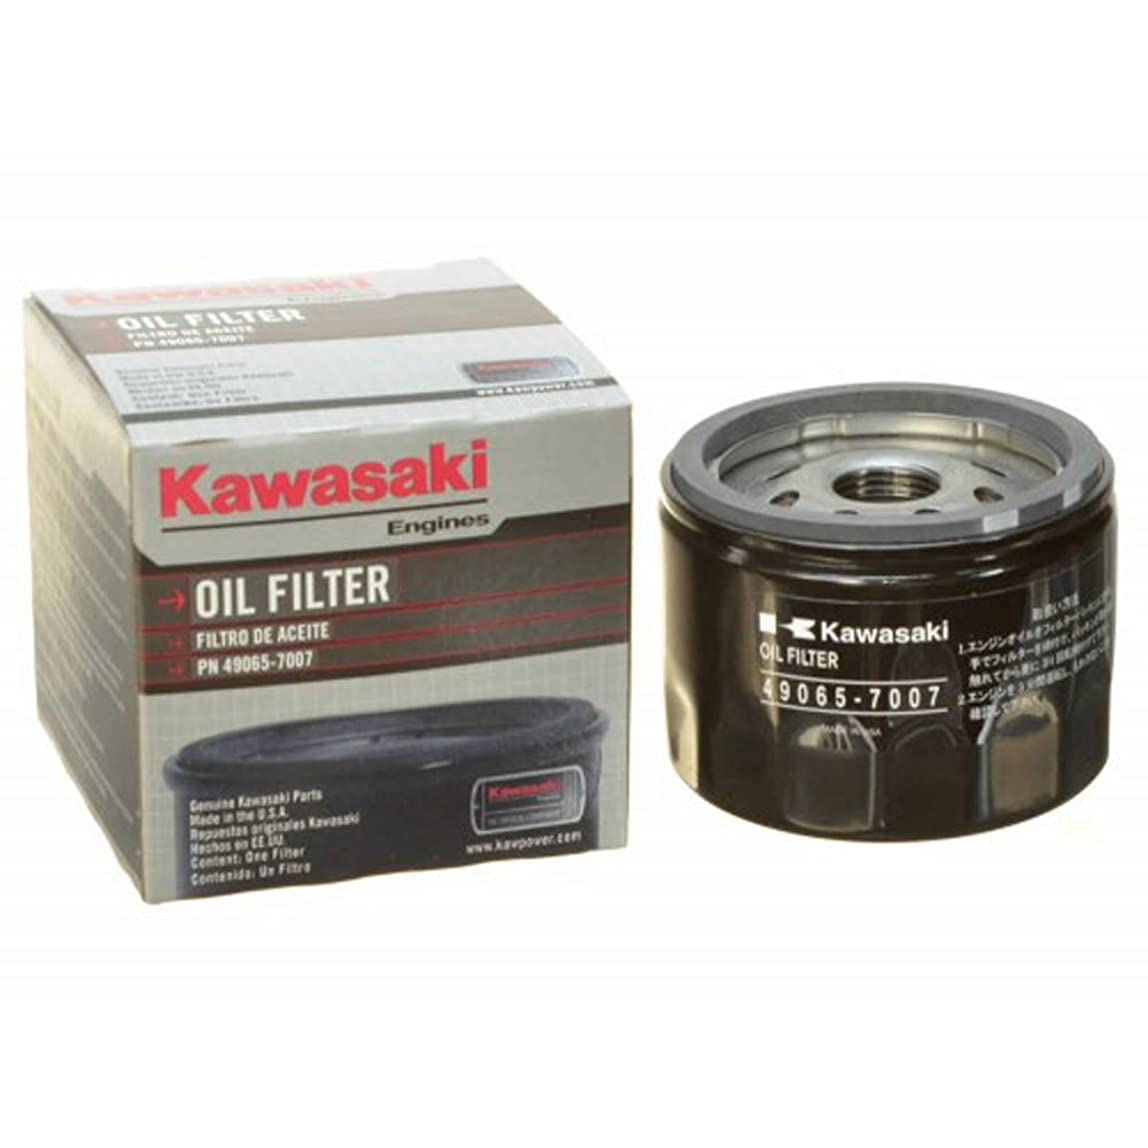 Kawasaki 49065-7007 Oil Filter walpfbf394084